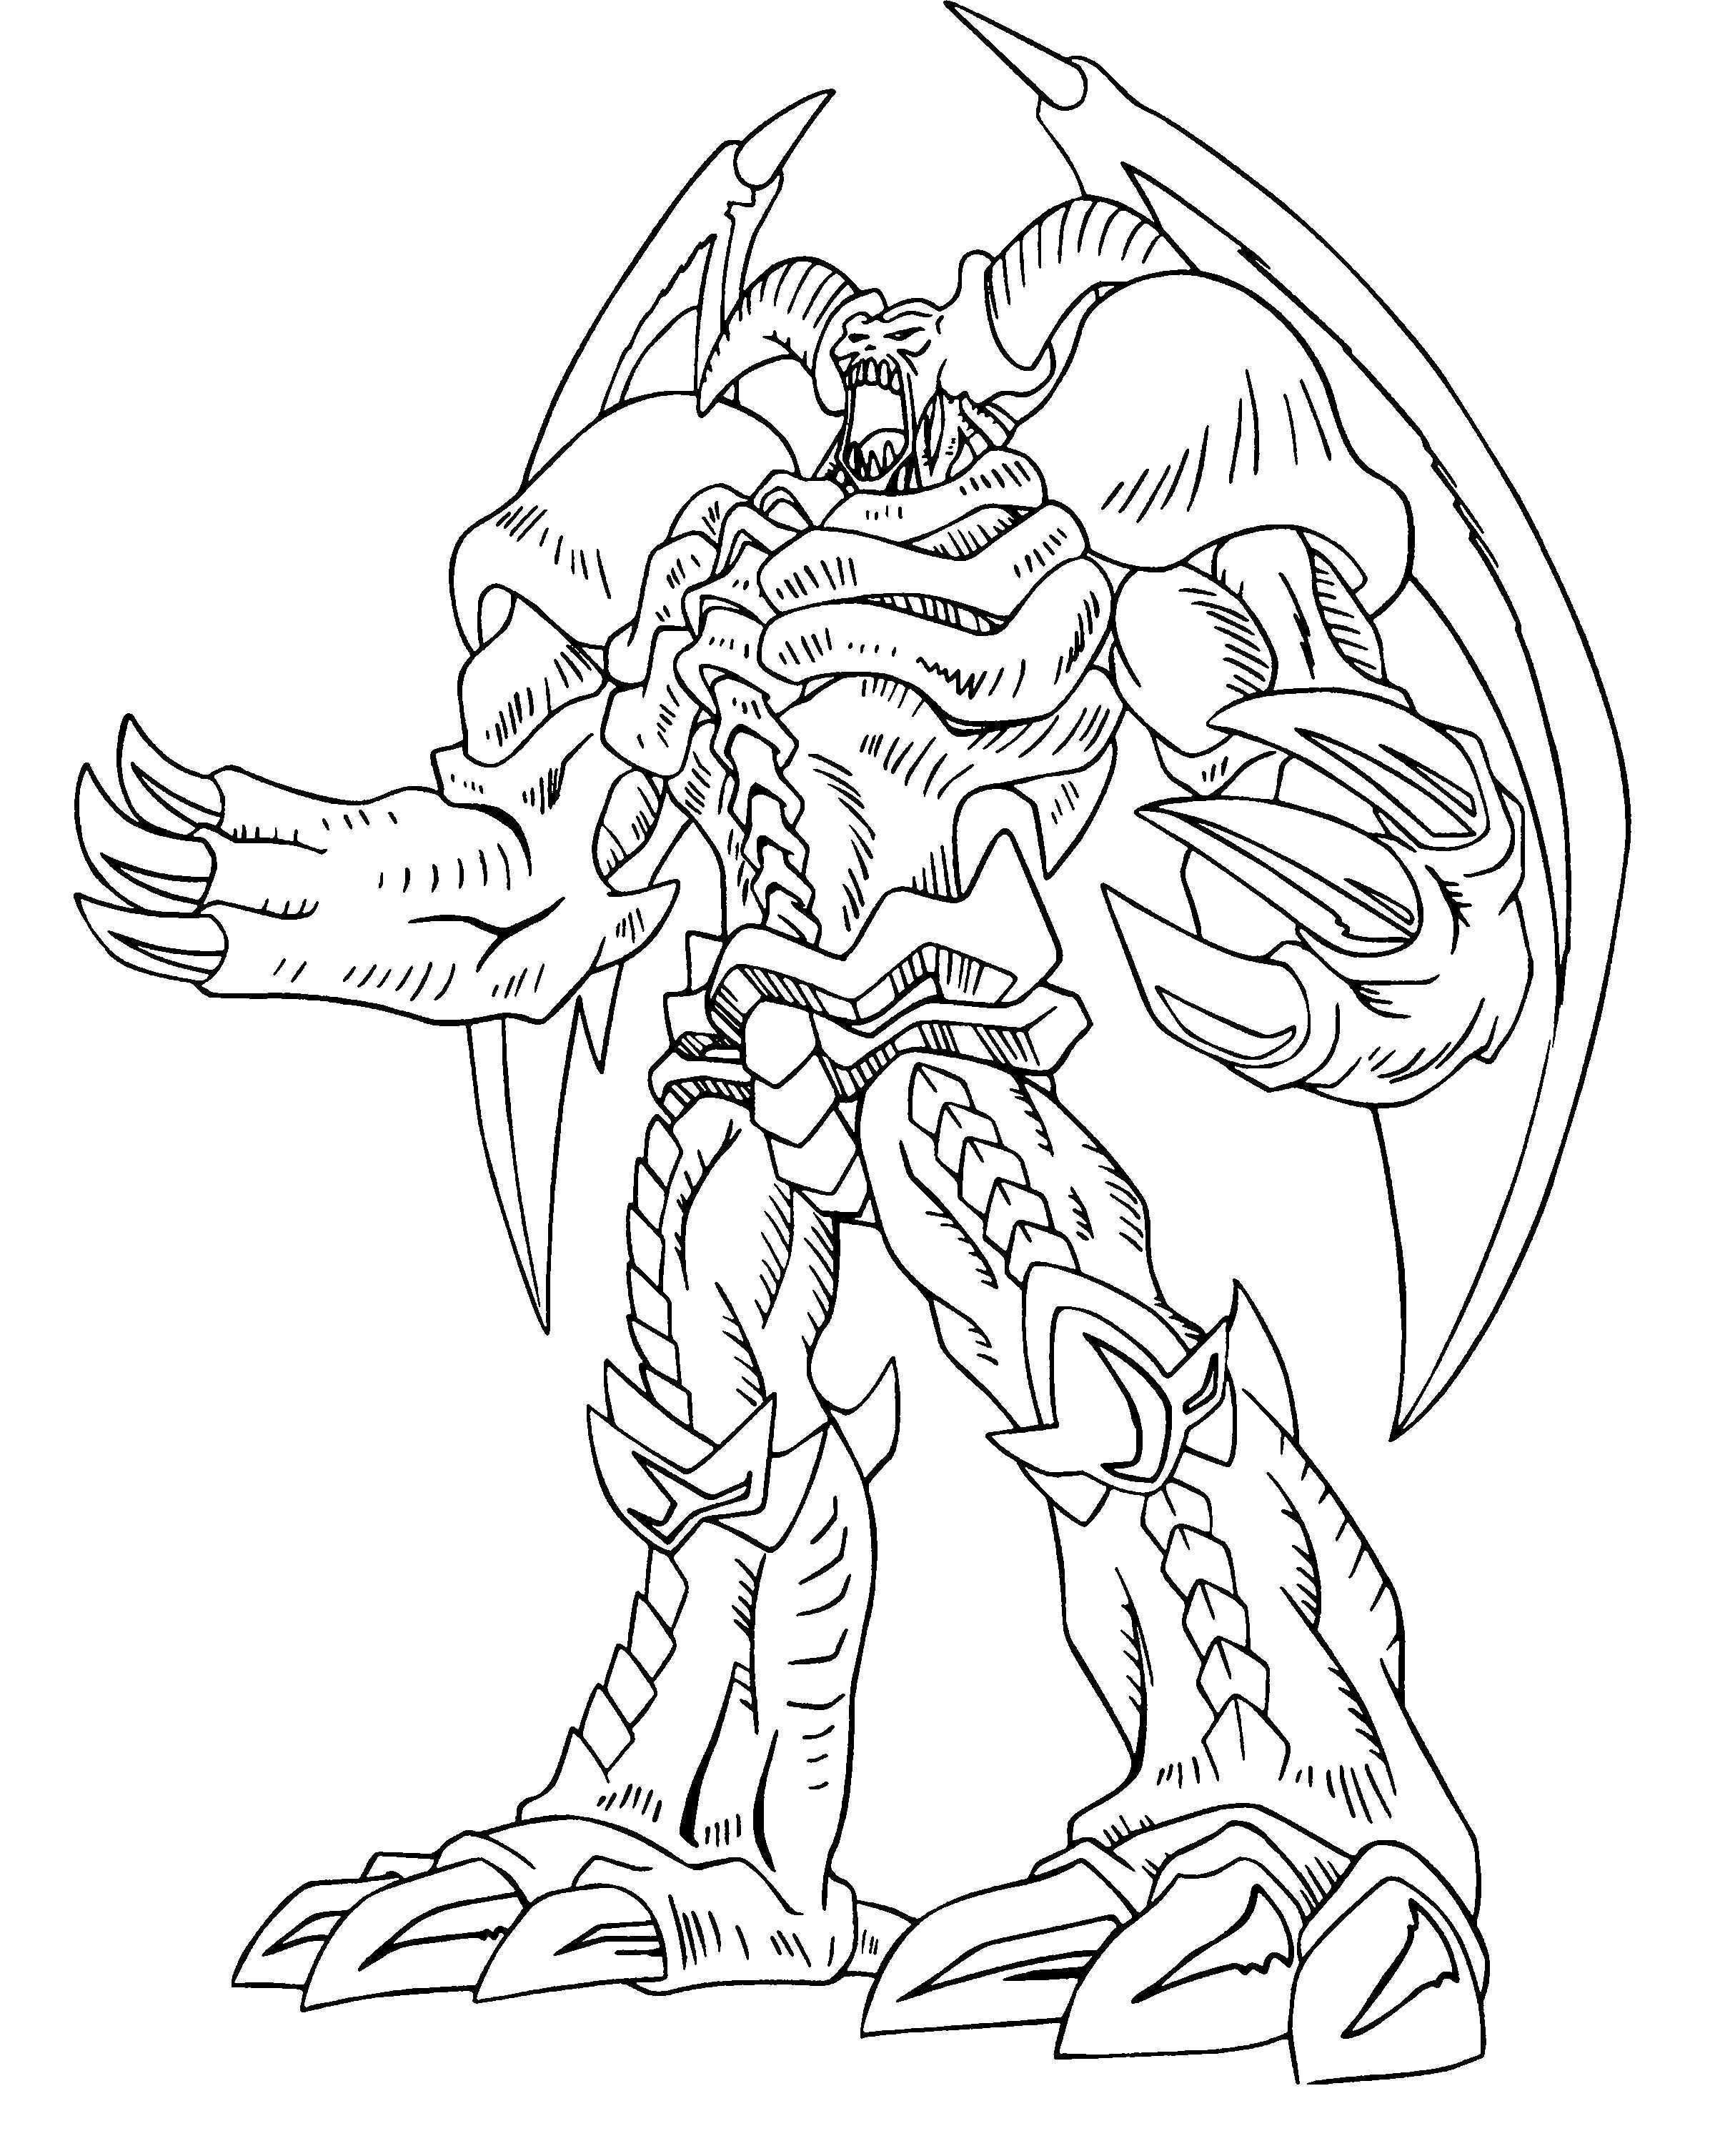 Yu Gi Oh Great Power Coloring Pages Monster Coloring Pages Dragon Coloring Page Cartoon Coloring Pages